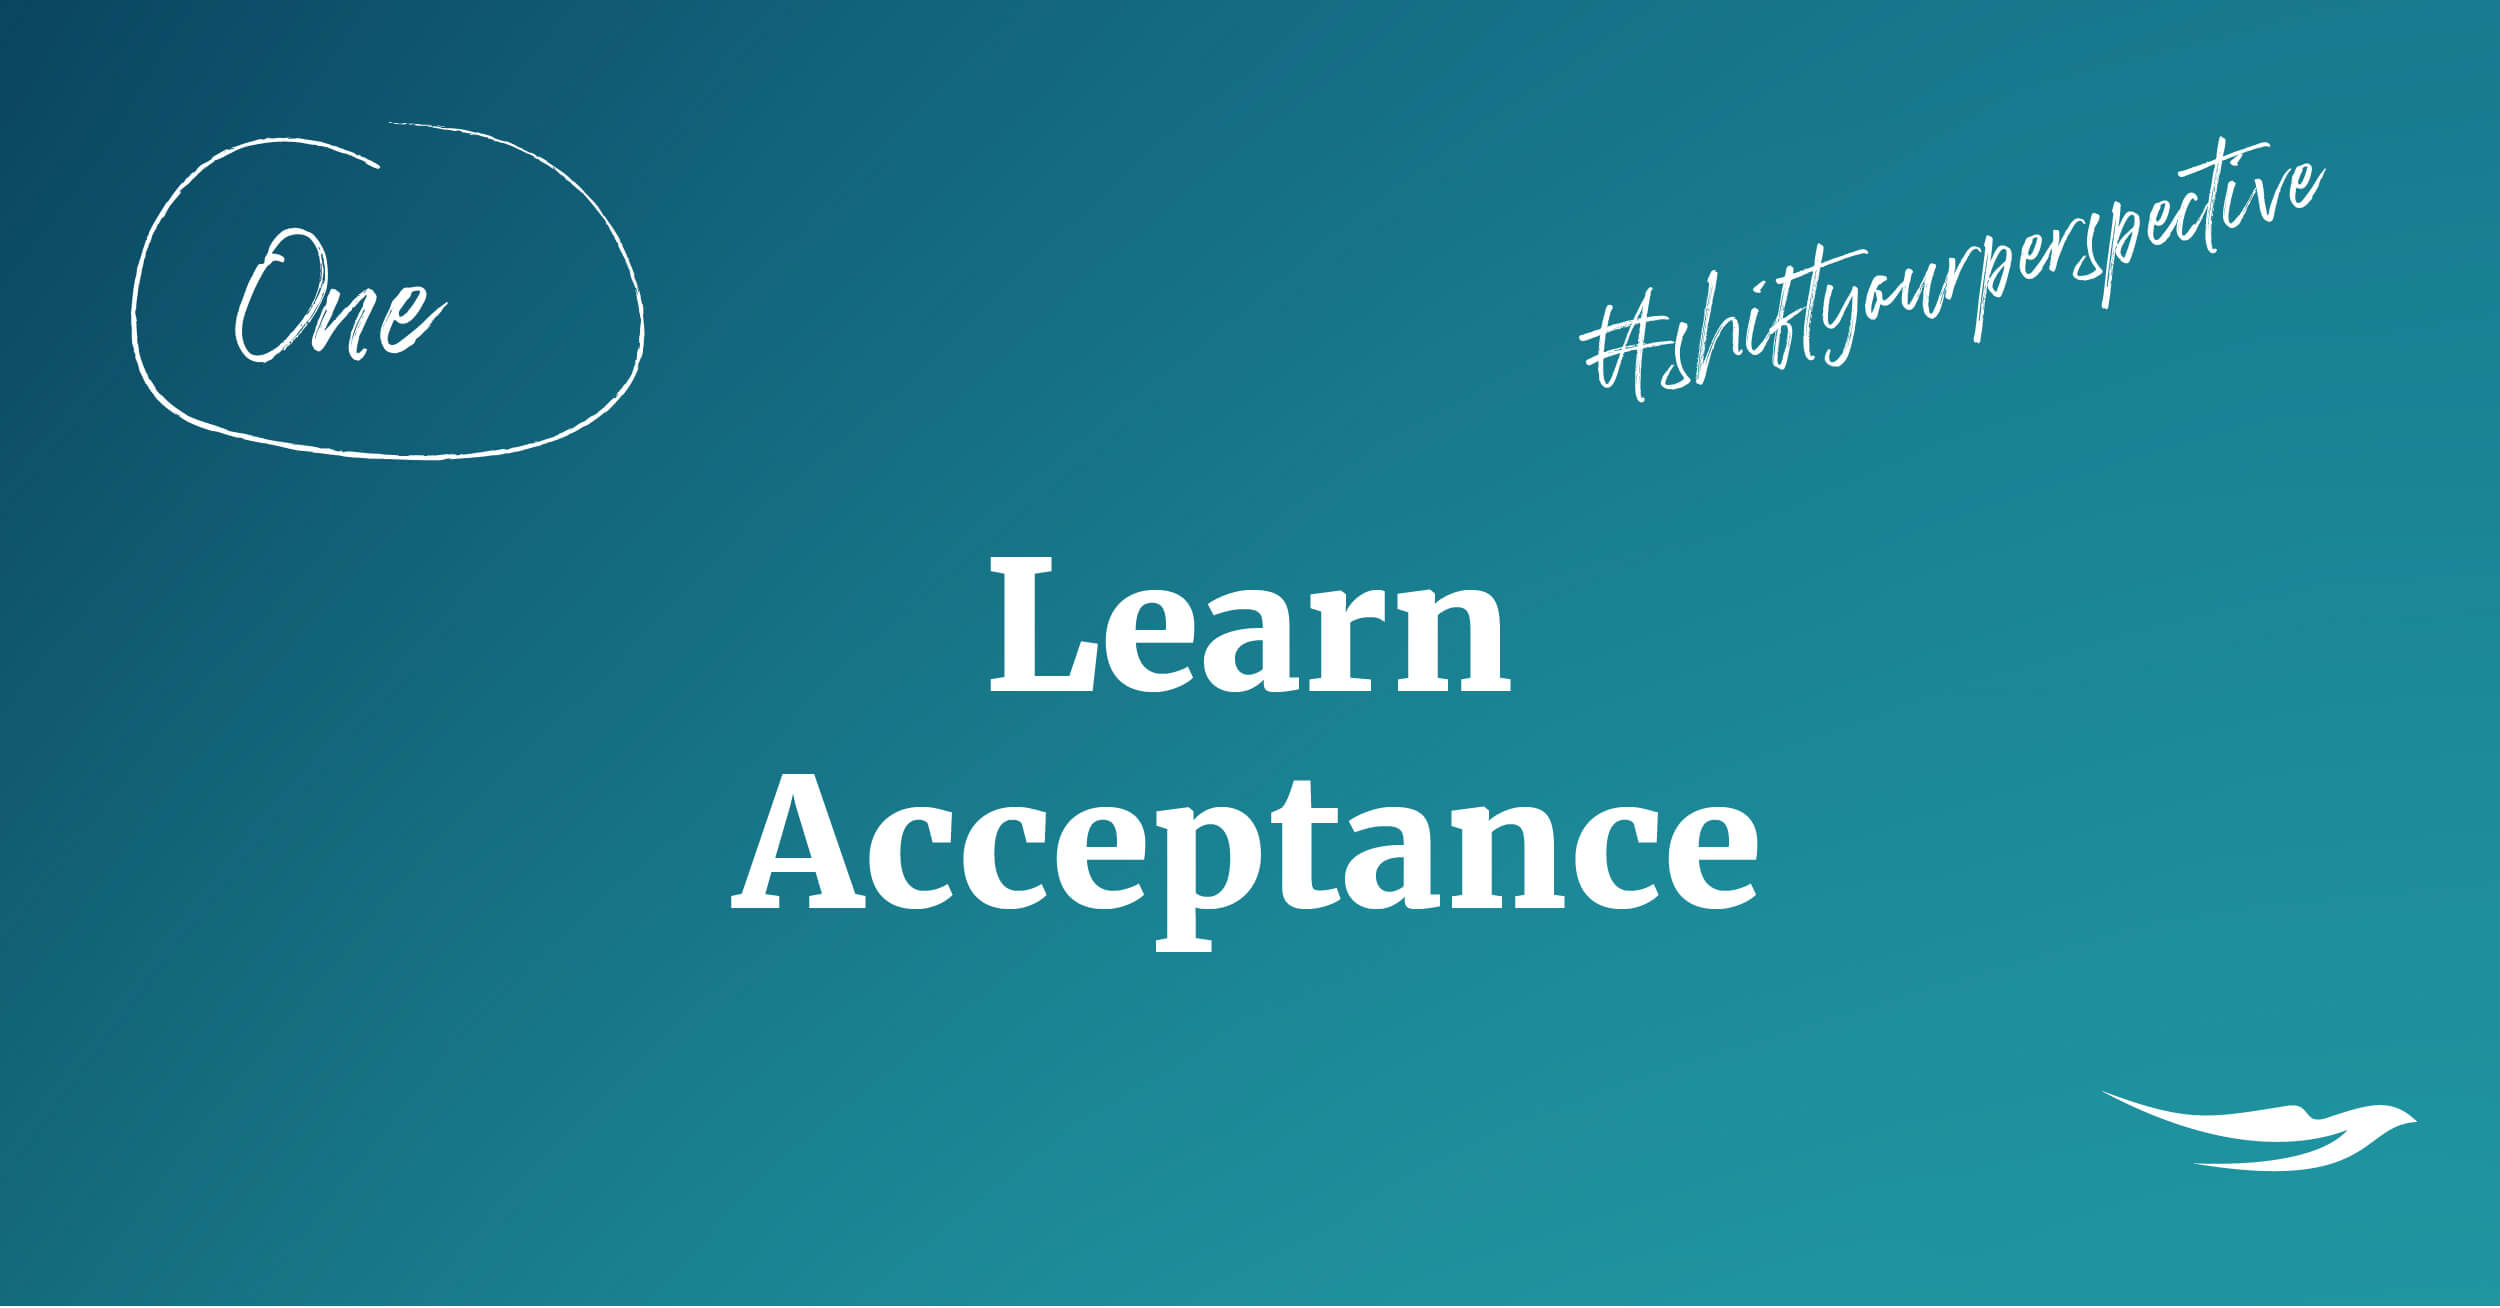 Shift your perspective - learn acceptance